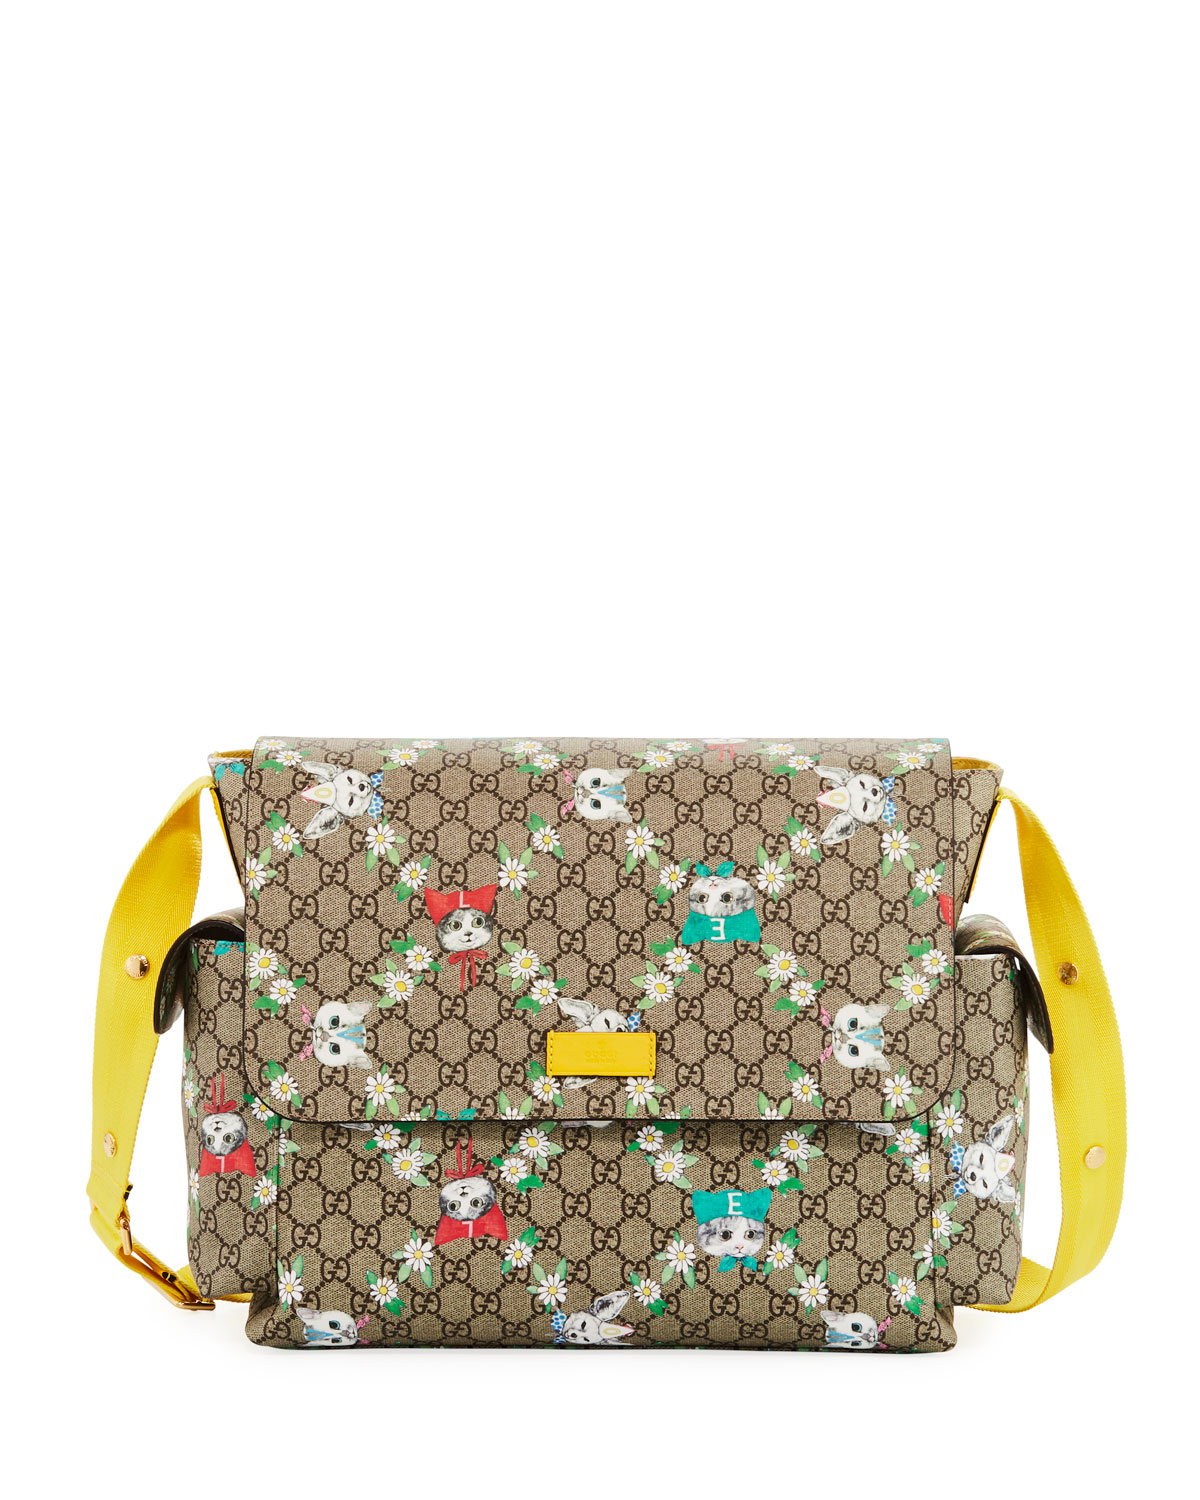 0cc6dca1e6f Gucci Borsa Mamma GG Supreme Canvas Cats Diaper Bag w  Changing Pad ...